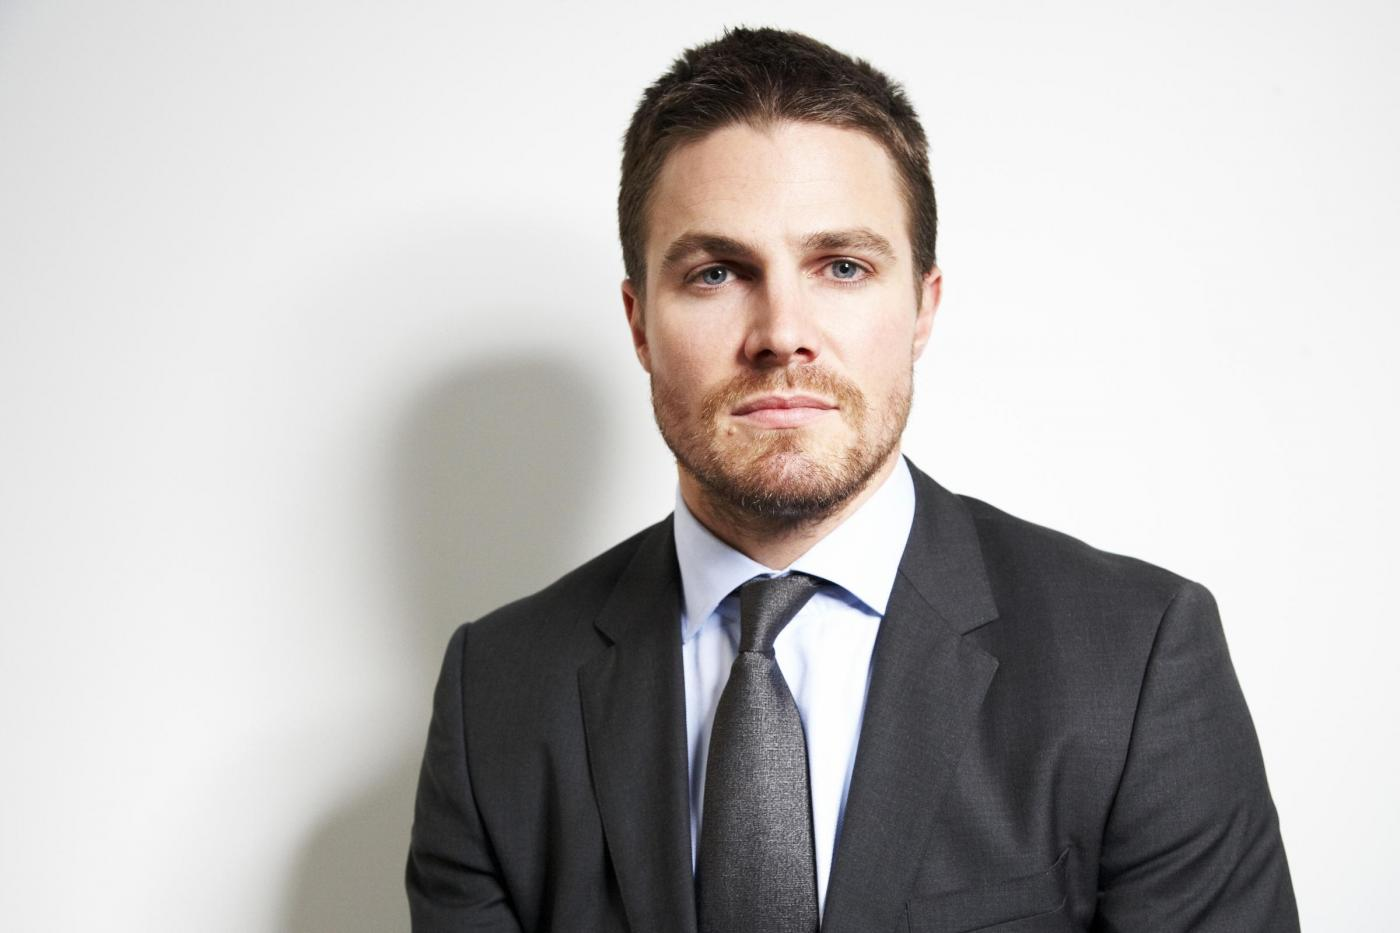 Stephen AmellSupergirl, Arrow, The Flash e Gotham: 20 curiosità che proprio non potete sapereArrow, Stephen Amell annuncia la fine della serieStephen Amell: infortunio molto doloroso sul set della settima stagione di ArrowSupergirl, Arrow, The Flash e Gotham: cambio di programmazione su Italia1Supergirl, The Flash, Arrow: il 21 febbraio il mega crossover ma senza Legends of TomorrowGame of Thrones è la serie più piratata del 2016 secondo TorrentFreakArrow 5, nel nuovo promo la verità su Laurel Lance: anticipazioni